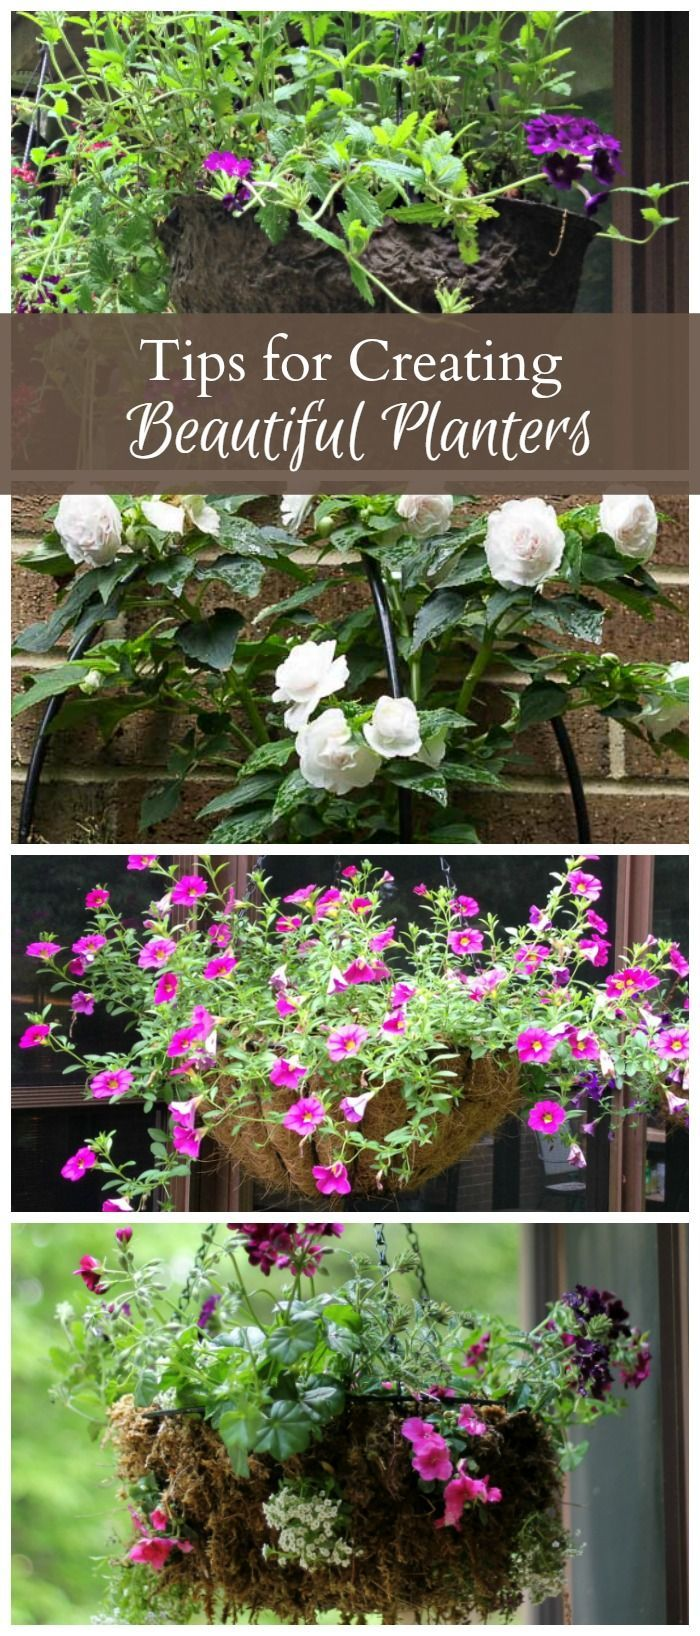 5 Simple Tips To Create Beautiful Hanging Flower Containers is part of Container flowers, Garden containers, Garden inspiration, Container gardening, Plants, Diy garden - Learn five different tips on how you can create beautiful hanging flower containers that will bloom and thrive all season long